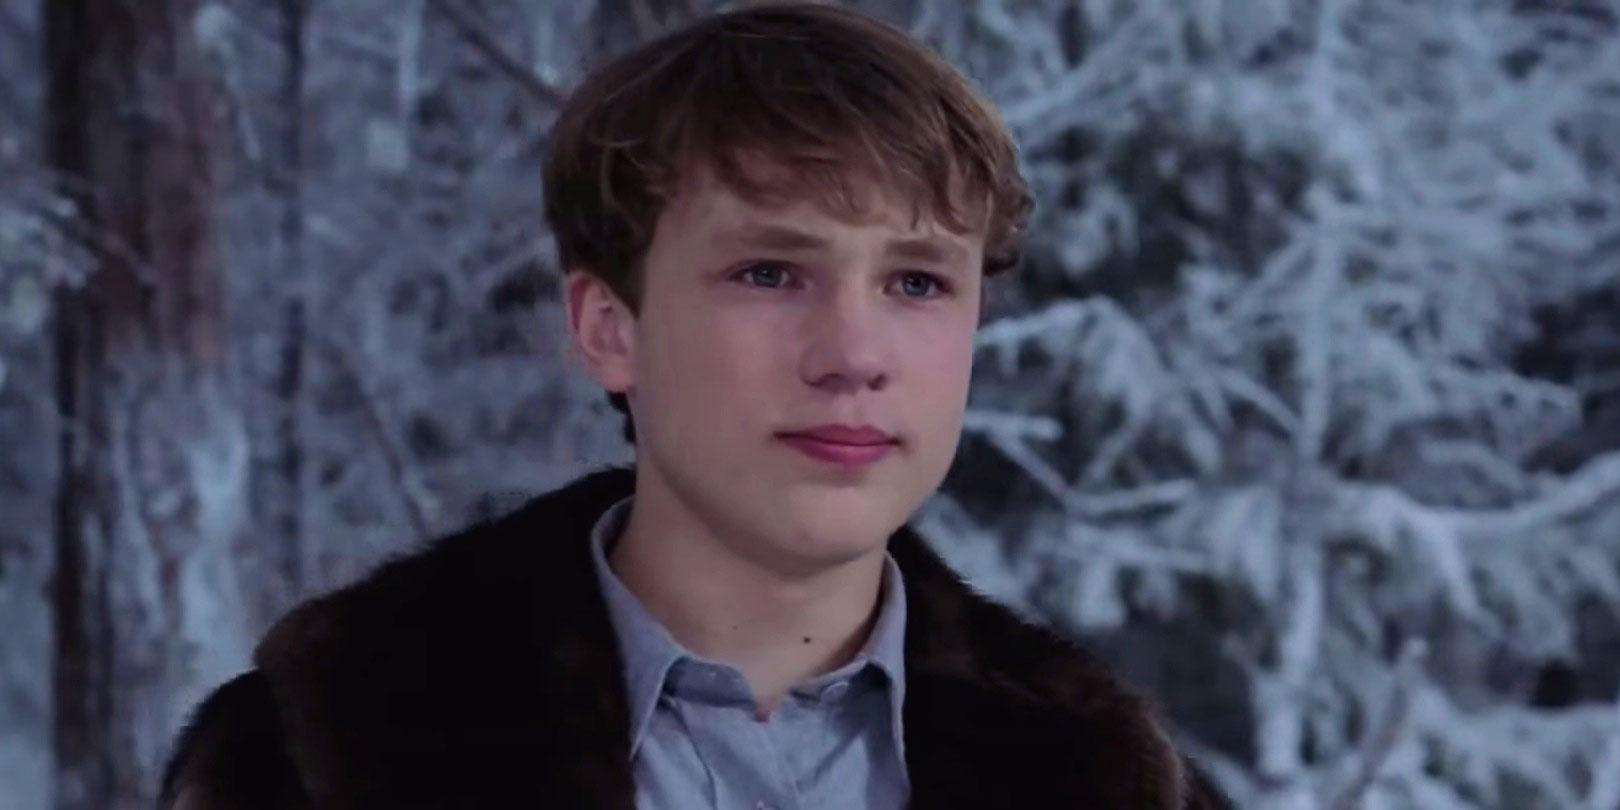 Peter from The Lion, The Witch and The Wardrobe is SUCH a babe now 🔥 http://t.co/M9Z0rsdw86 http://t.co/mstEr5R6F8